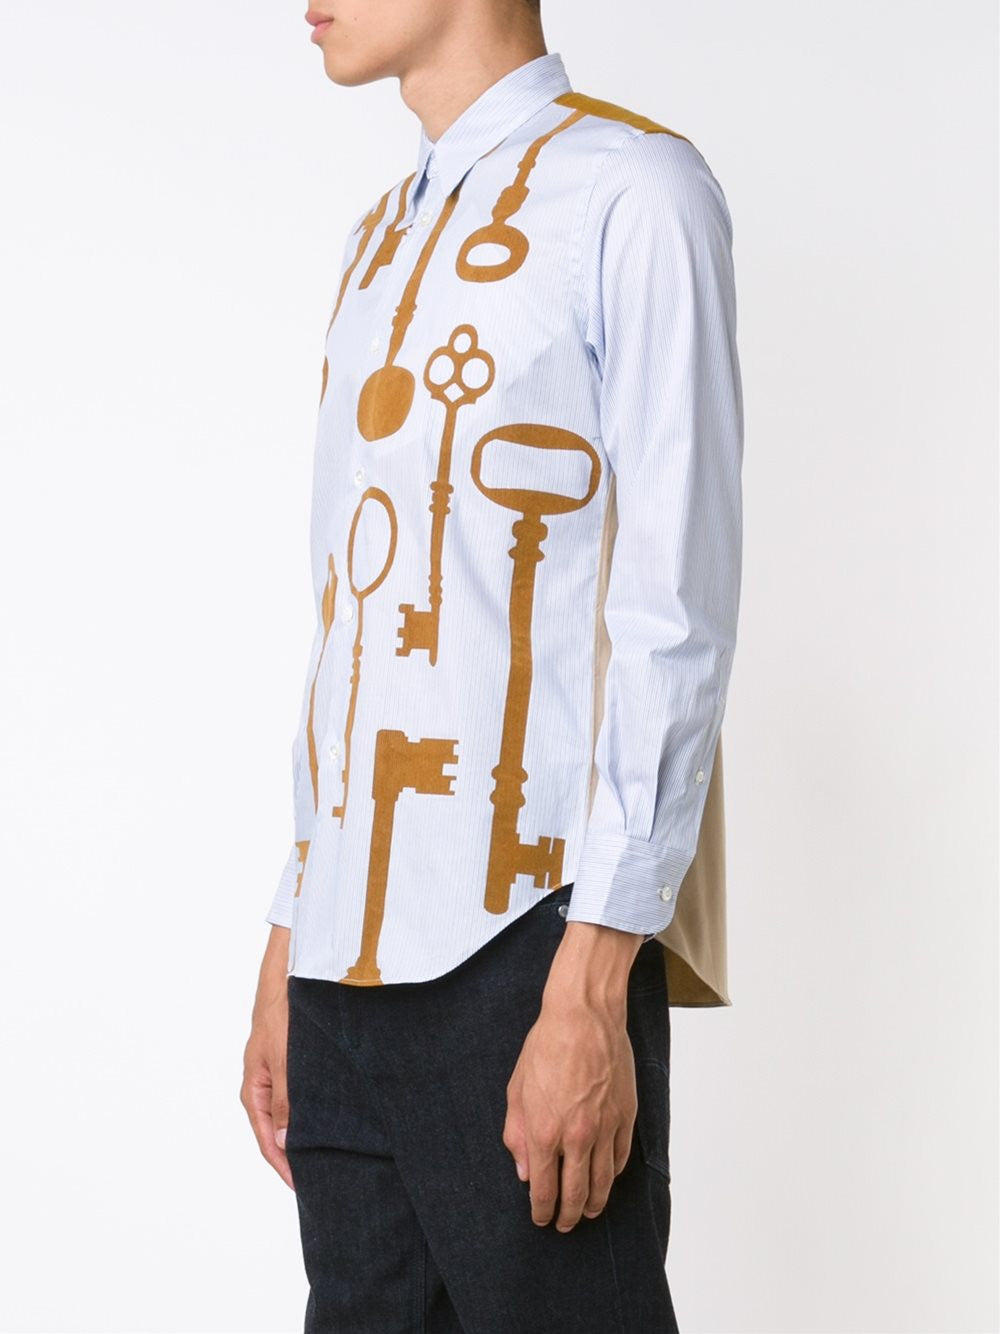 Cotton Key Shirt | B034-051